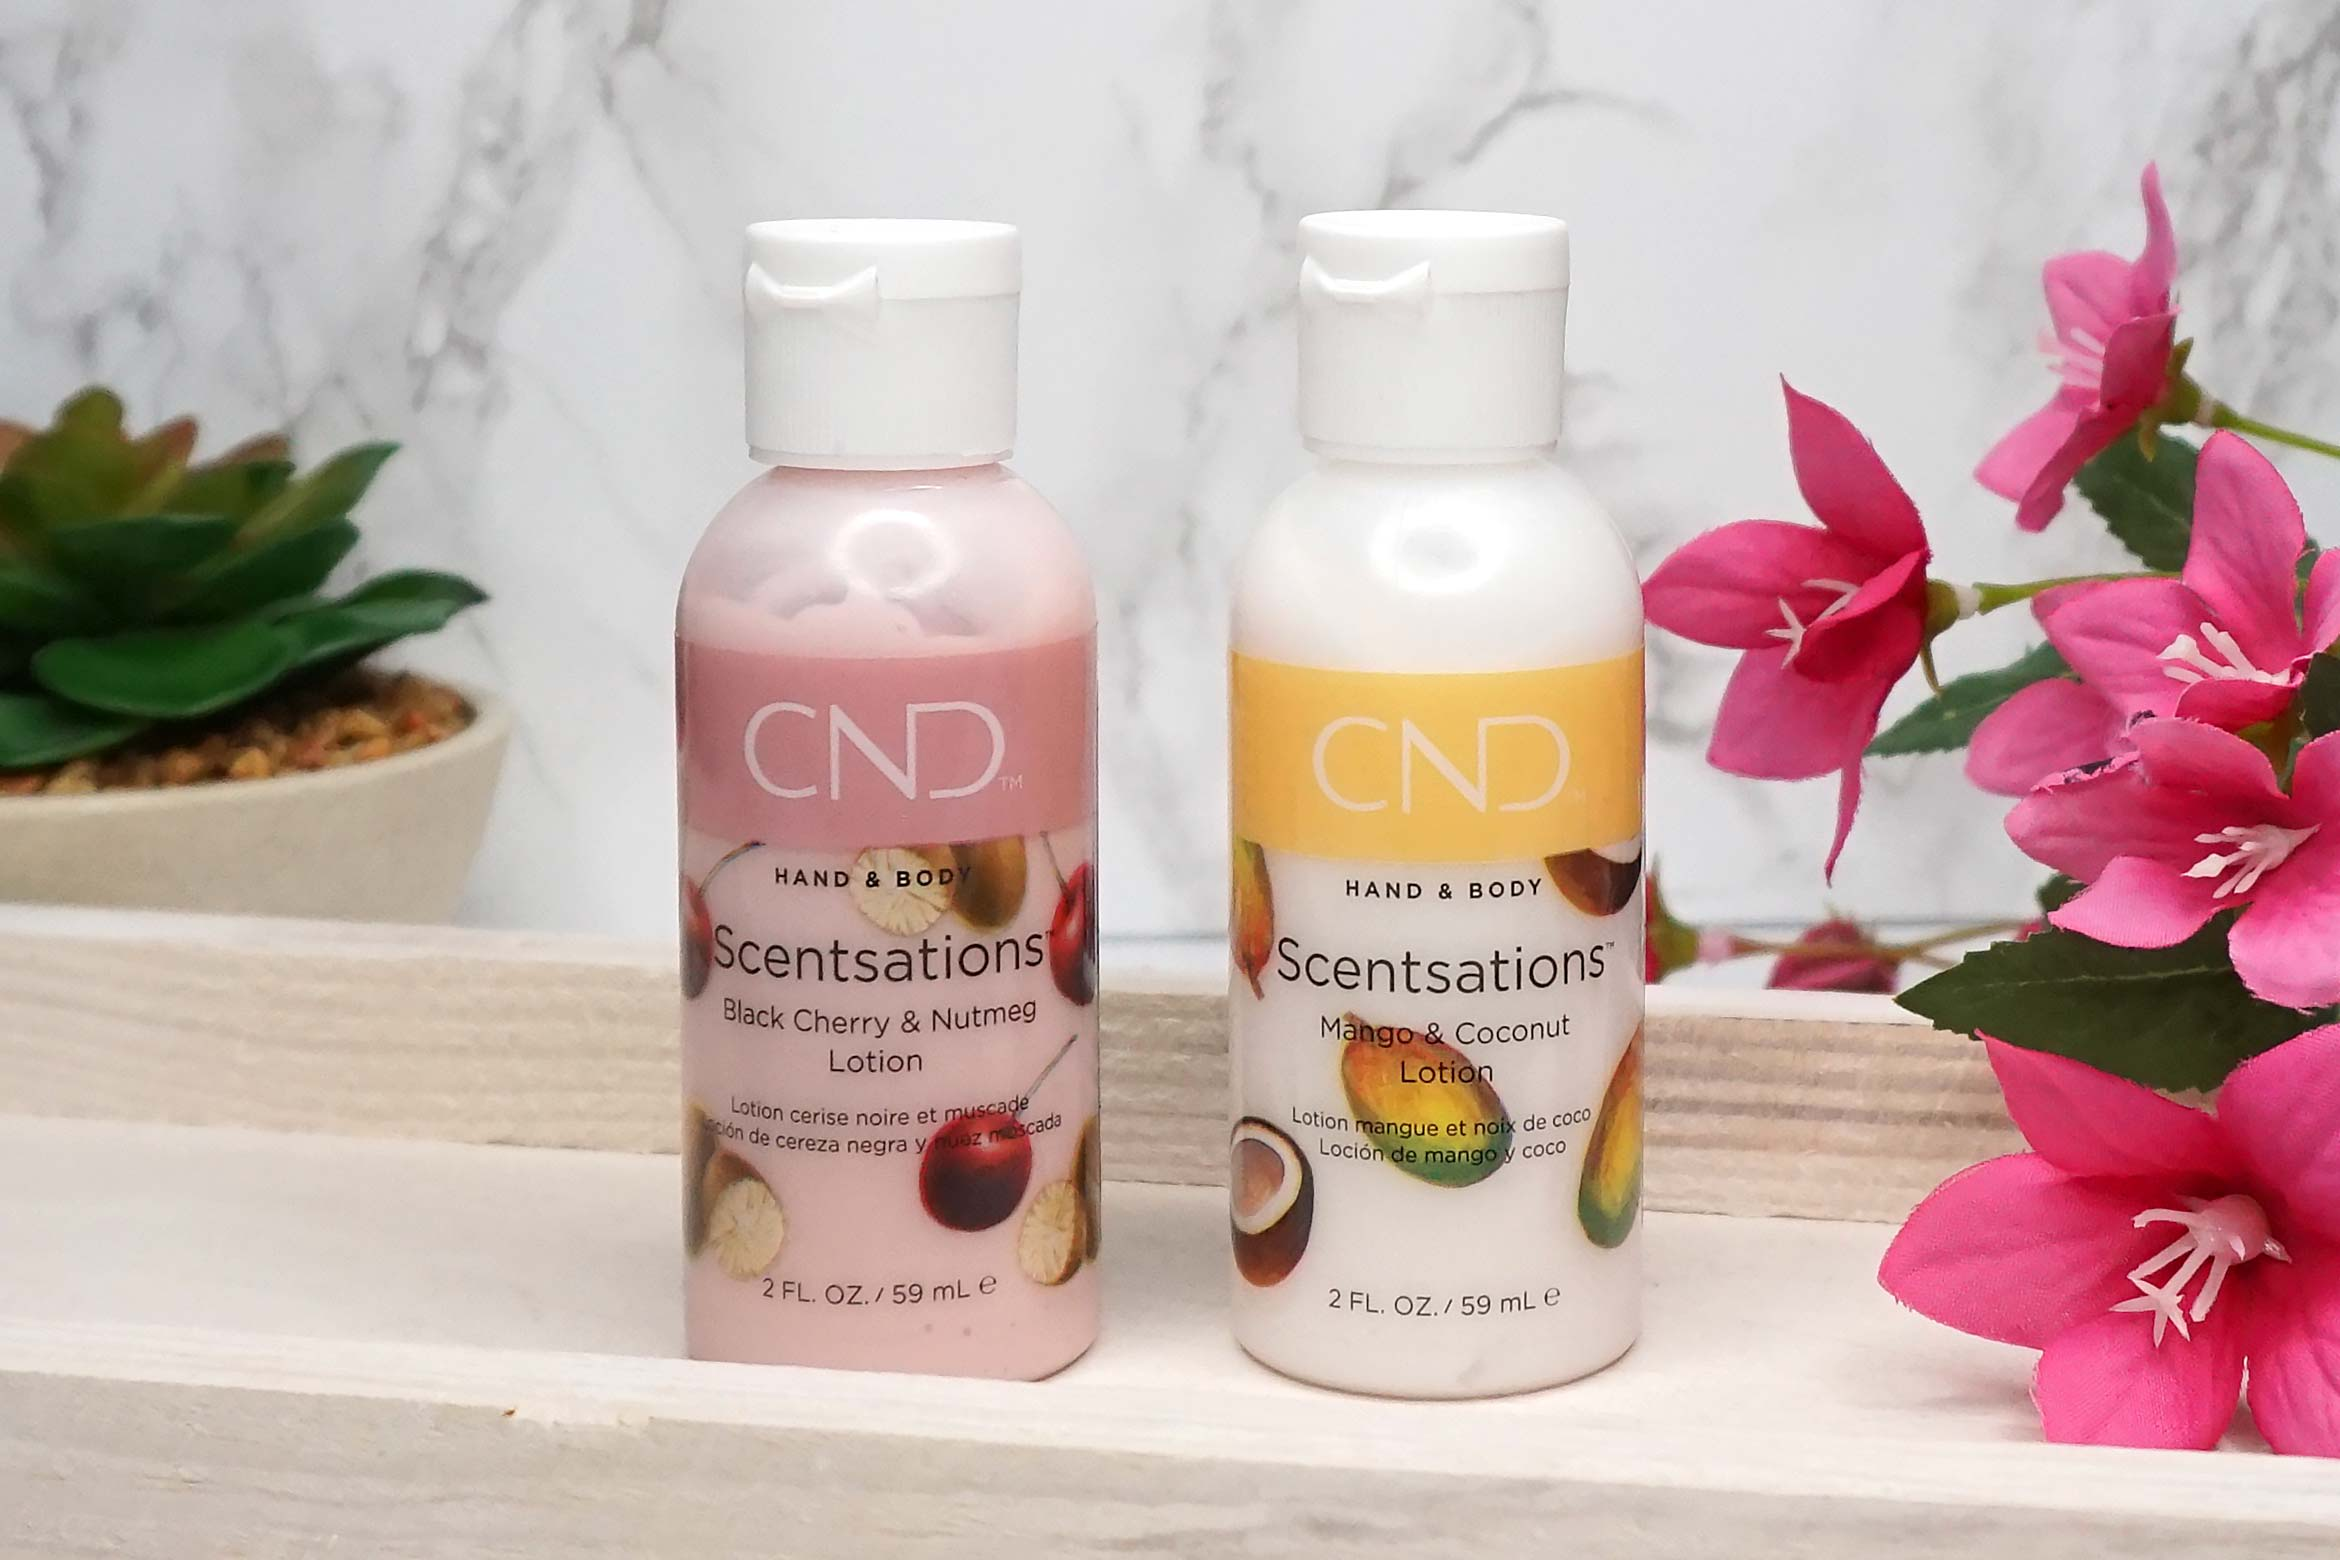 CND-Scentsations-lotion-review